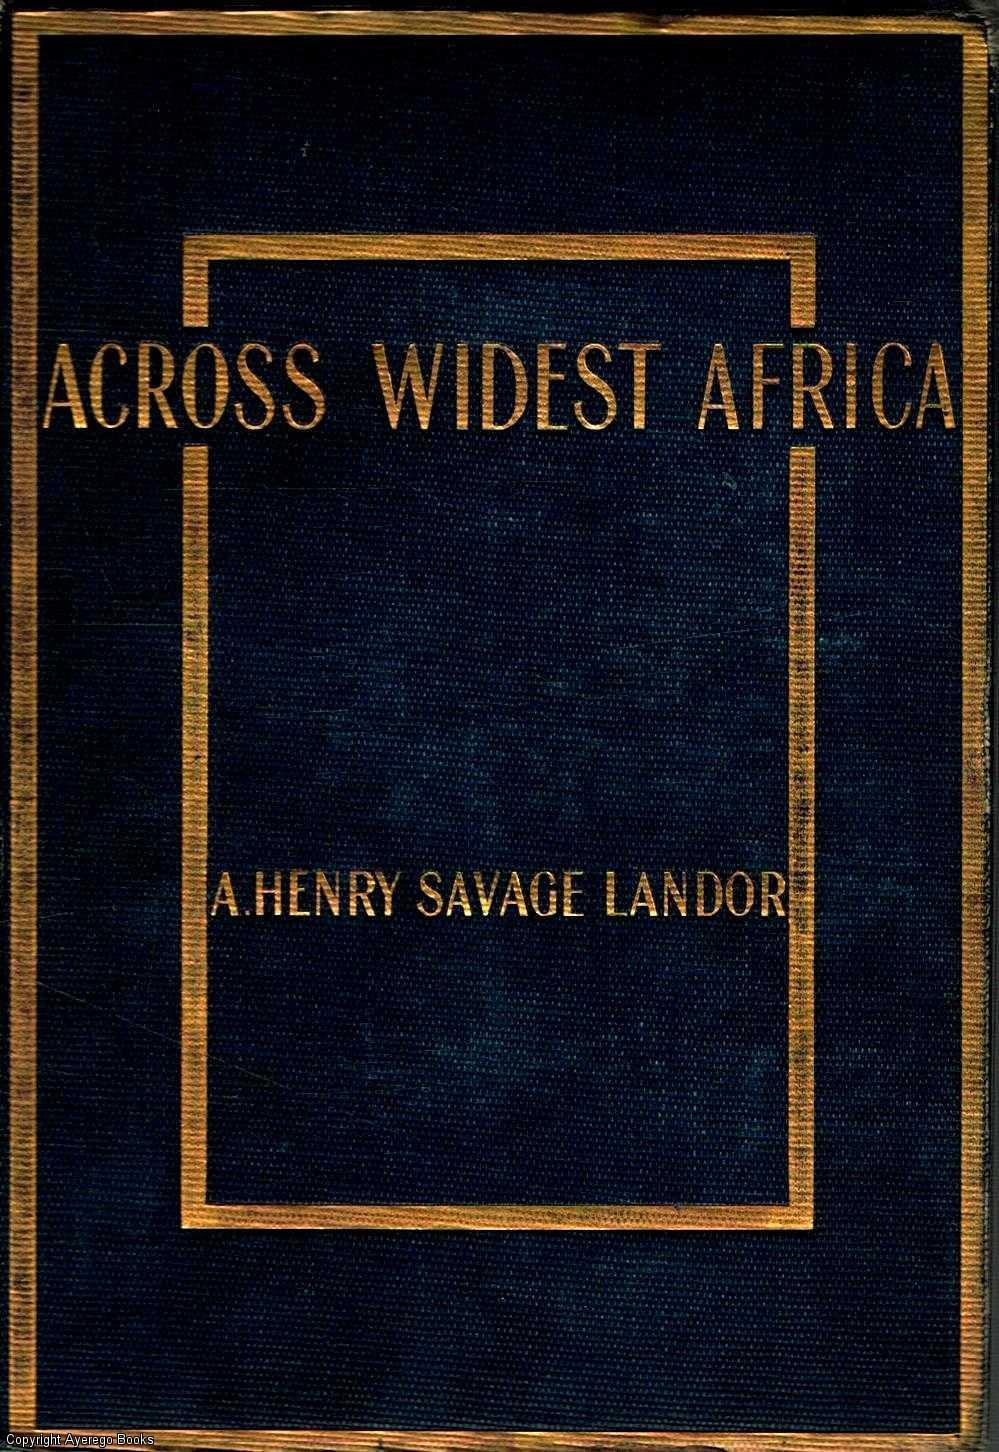 Savage Landor 1907 Good Across Widest Africa Volume Ii By A Antiques